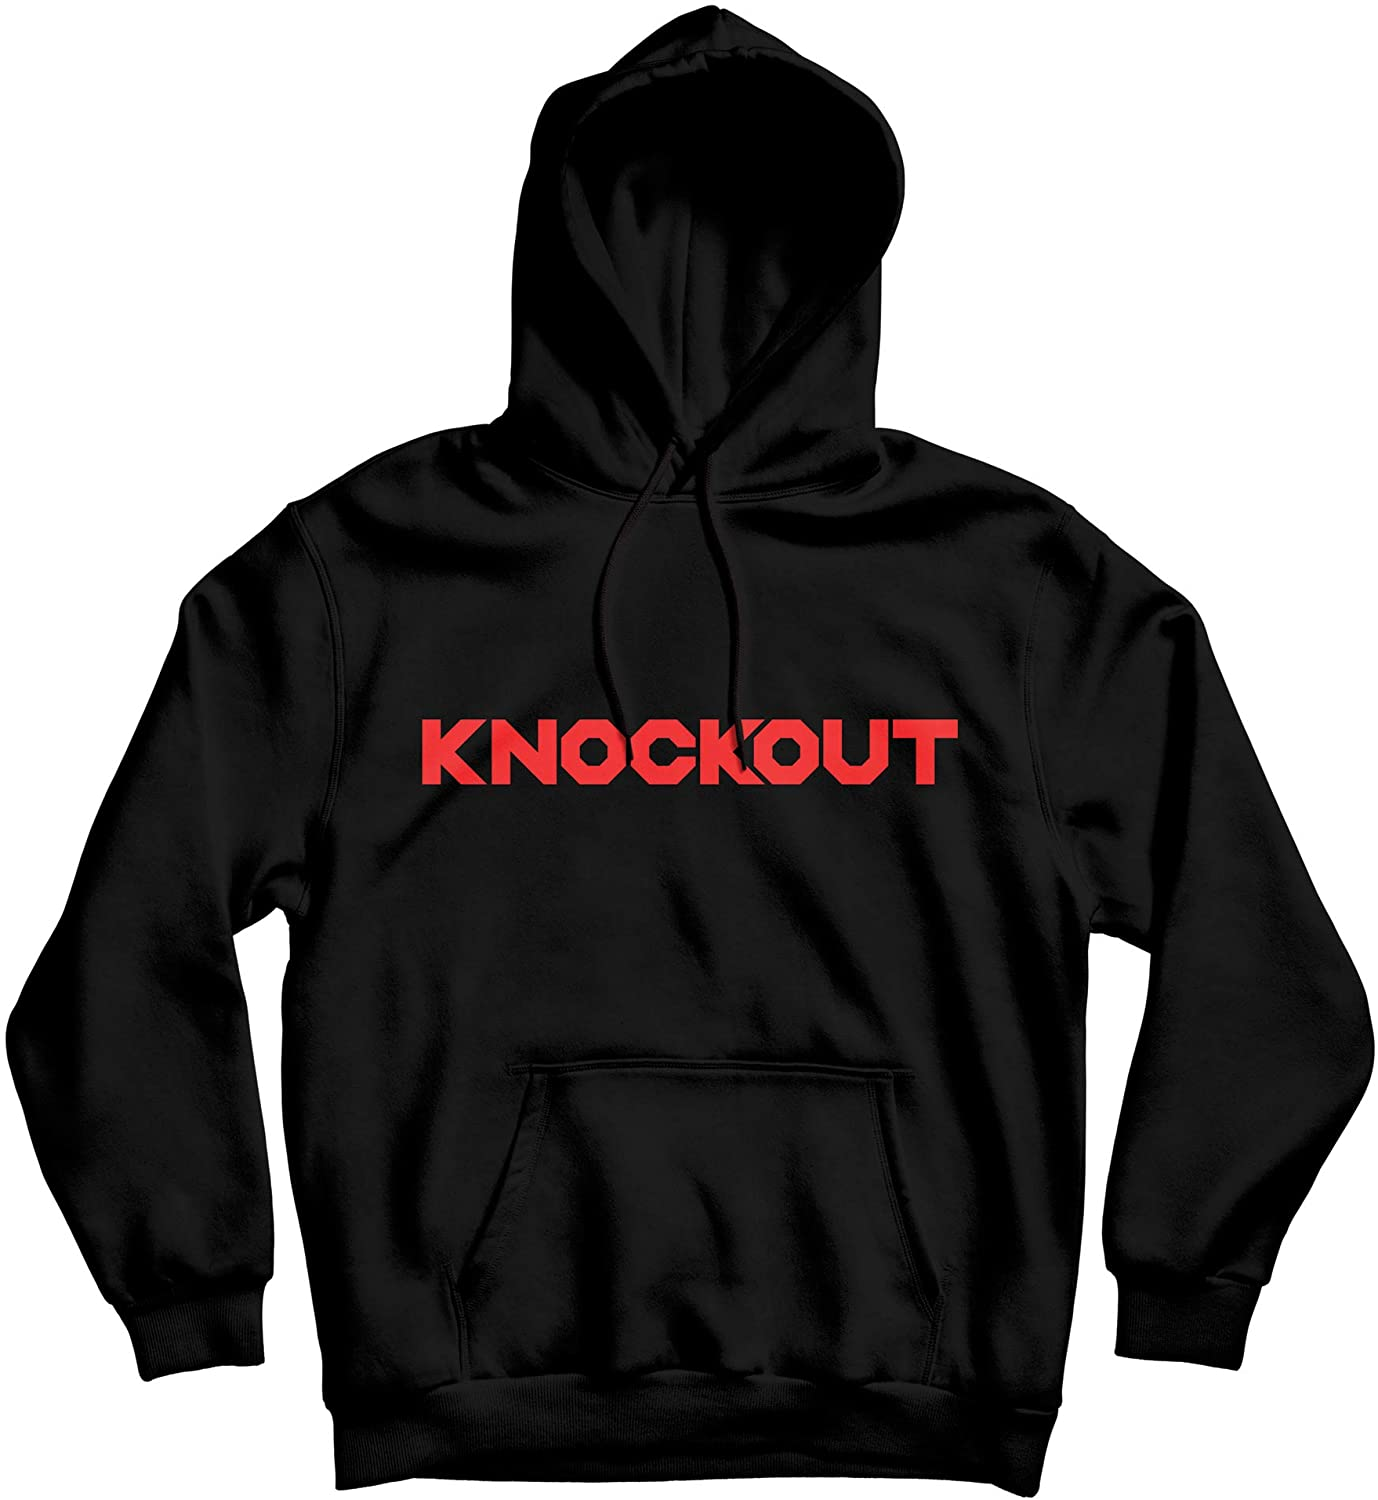 Knockout guys hoodies